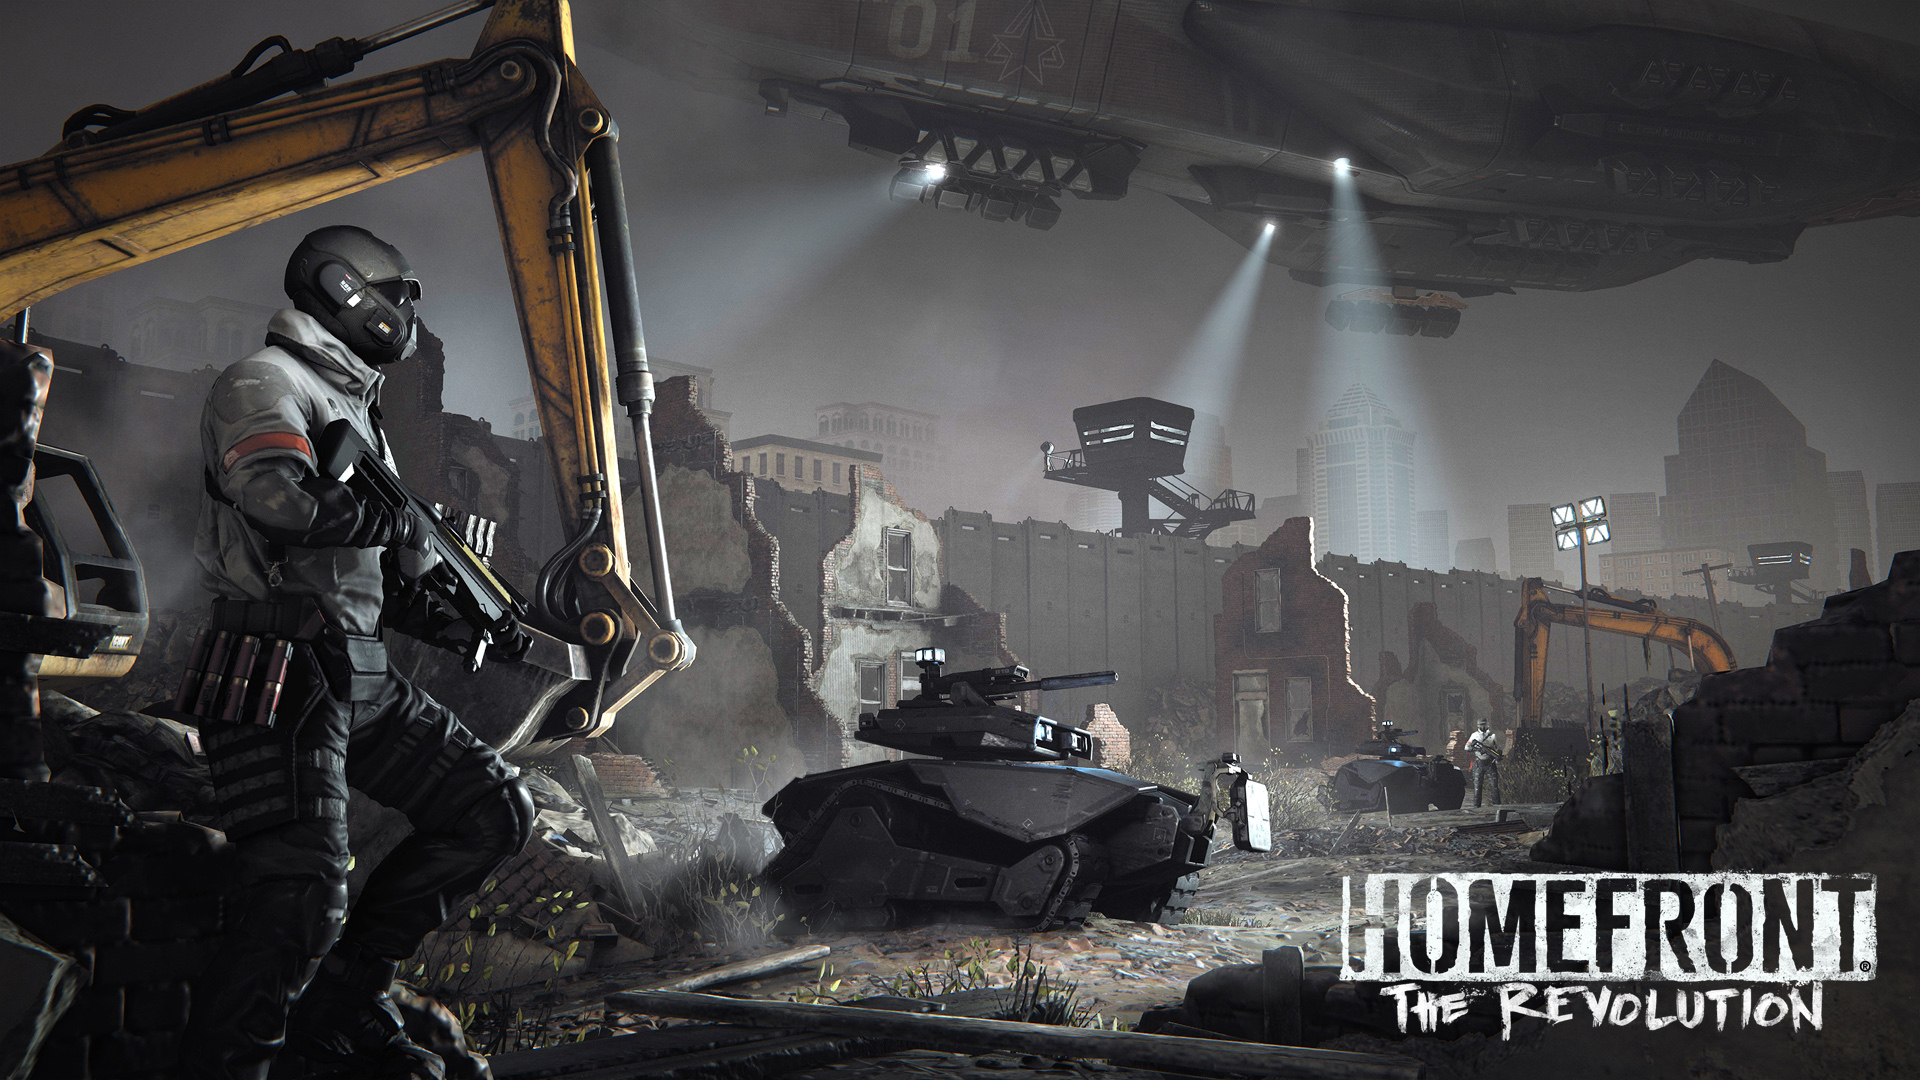 Homefront the revolution wallpapers in ultra hd 4k for Homefront wallpaper